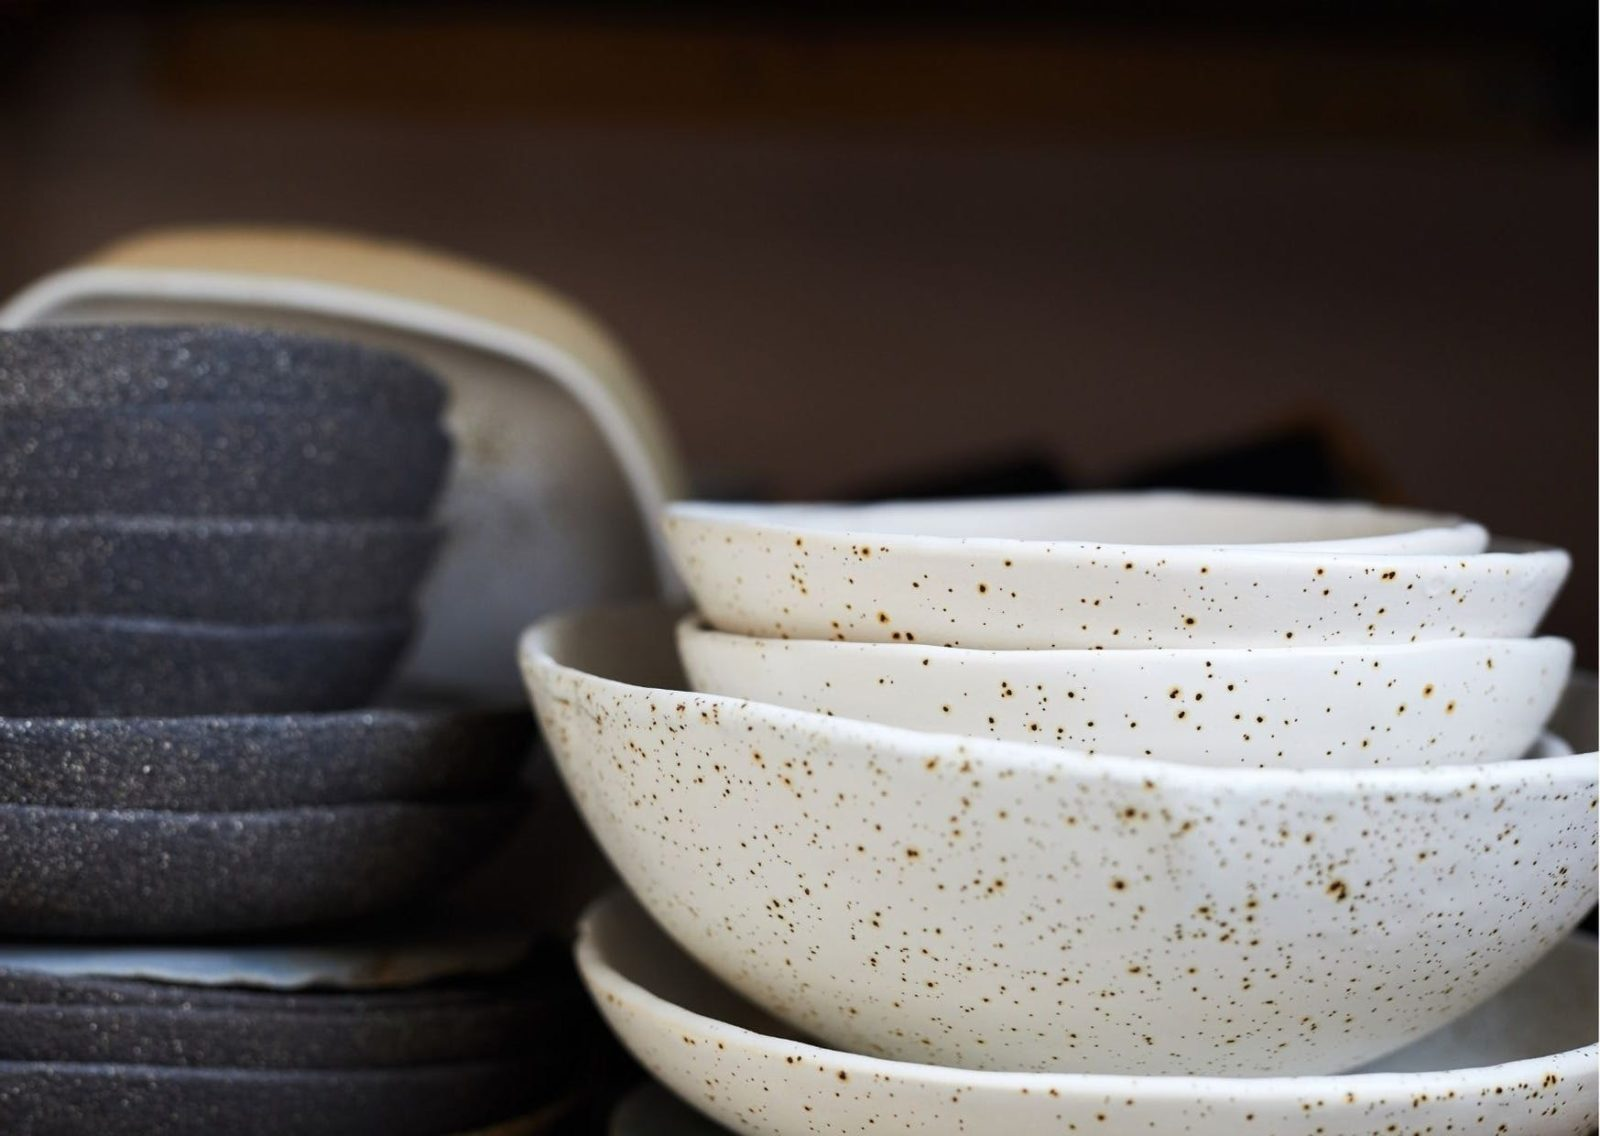 Two stacks of pottery bowls. Black bowls on the left and white bowls with specks on the right